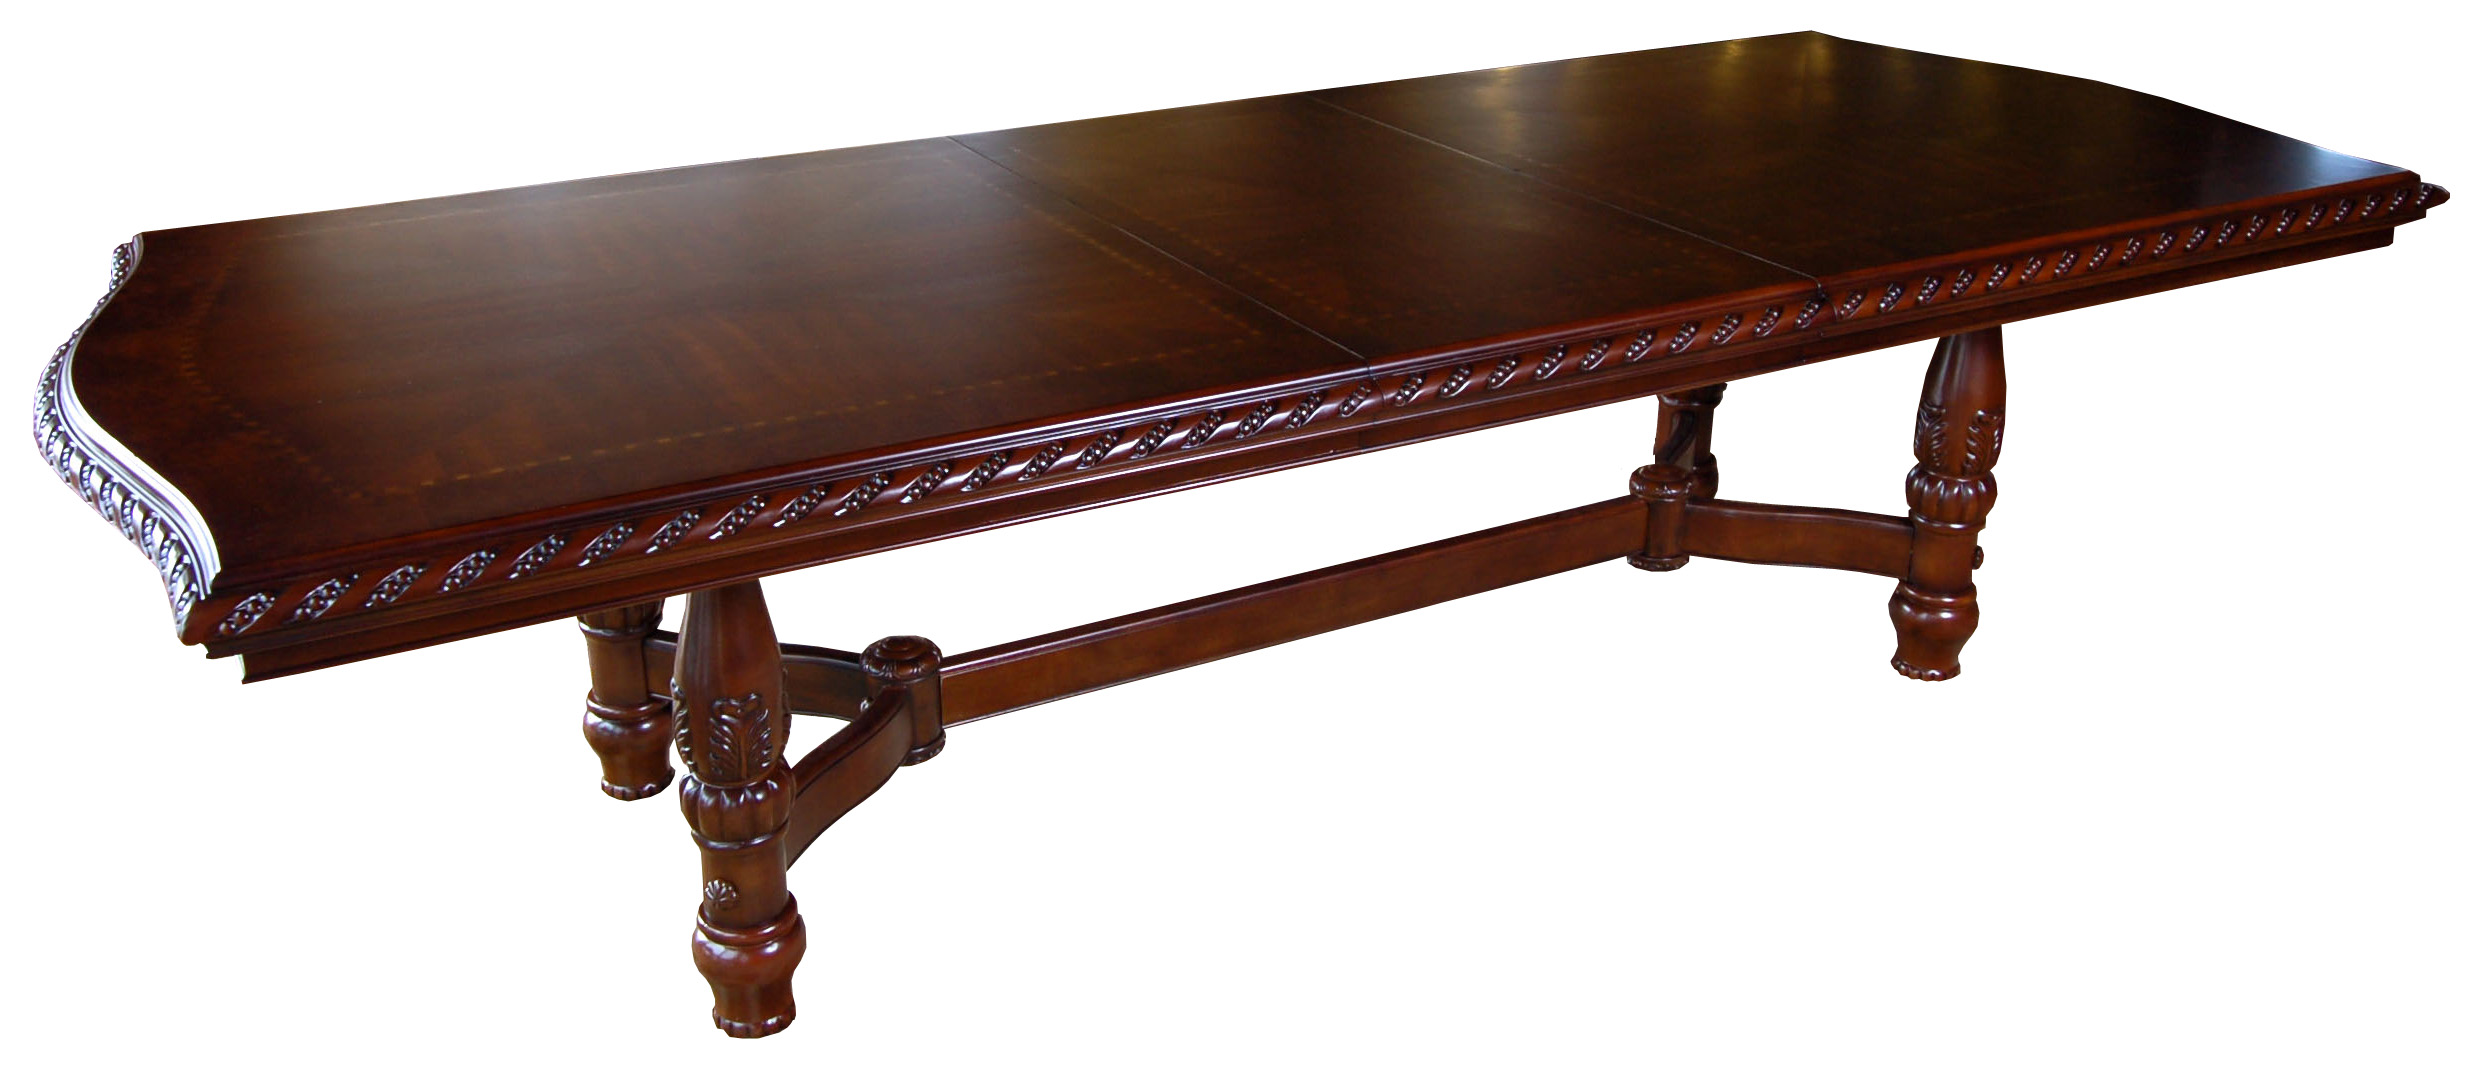 Details about Large 10 ft Mahogany Dining / Conference Table